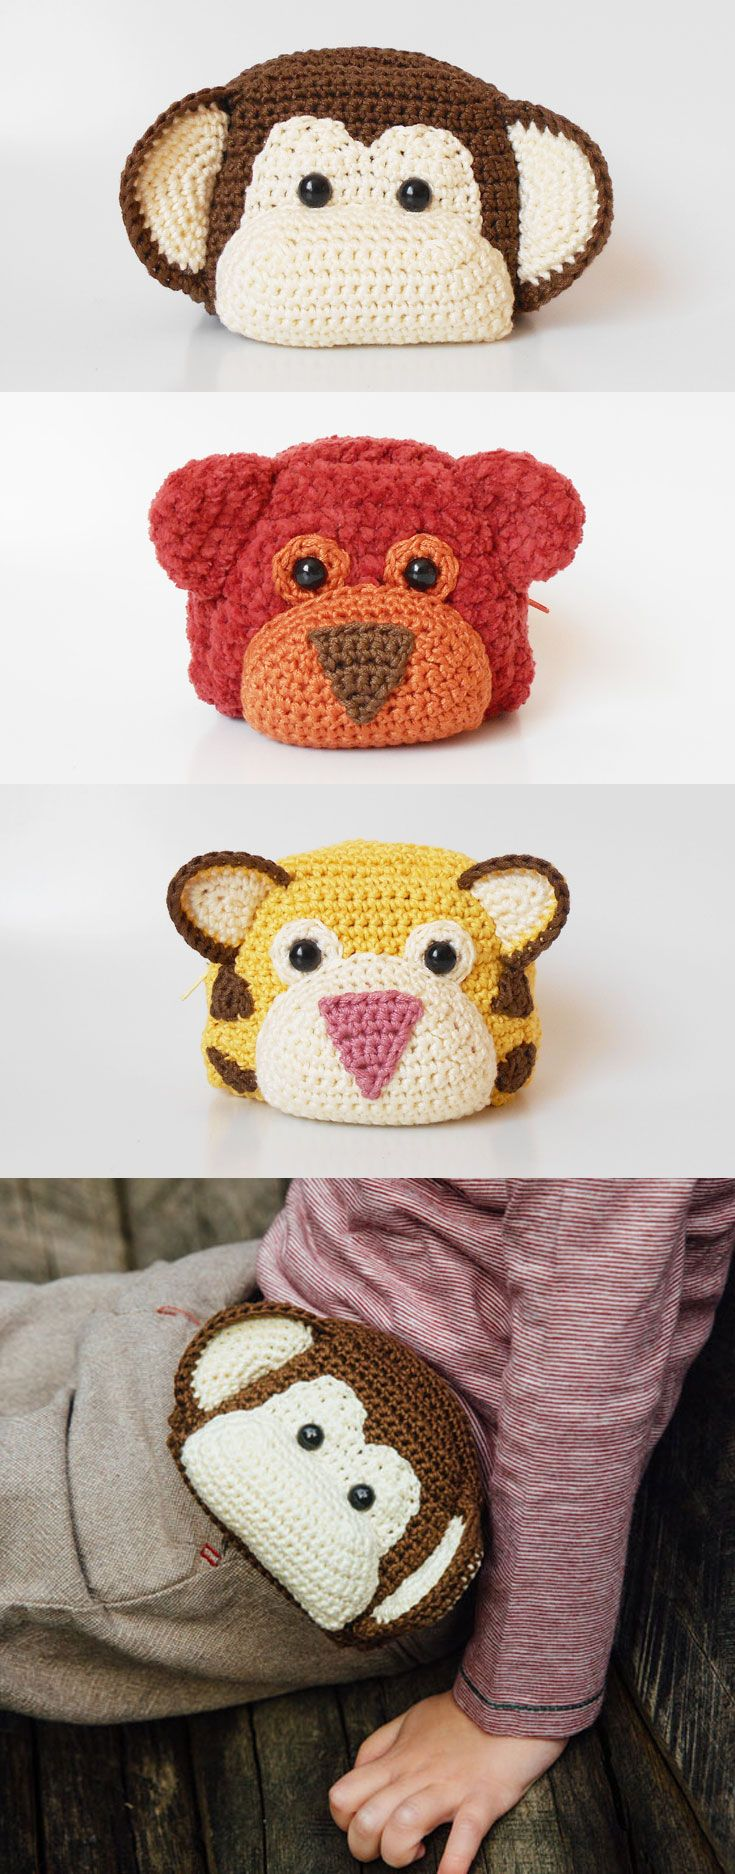 Cute animal waist bags, for kids to carry around little toys or a snack and run free. A child's life is filled to the brim with different activities and outings, and what better way to keep it all organized than with cute and soft amigurumi bags?